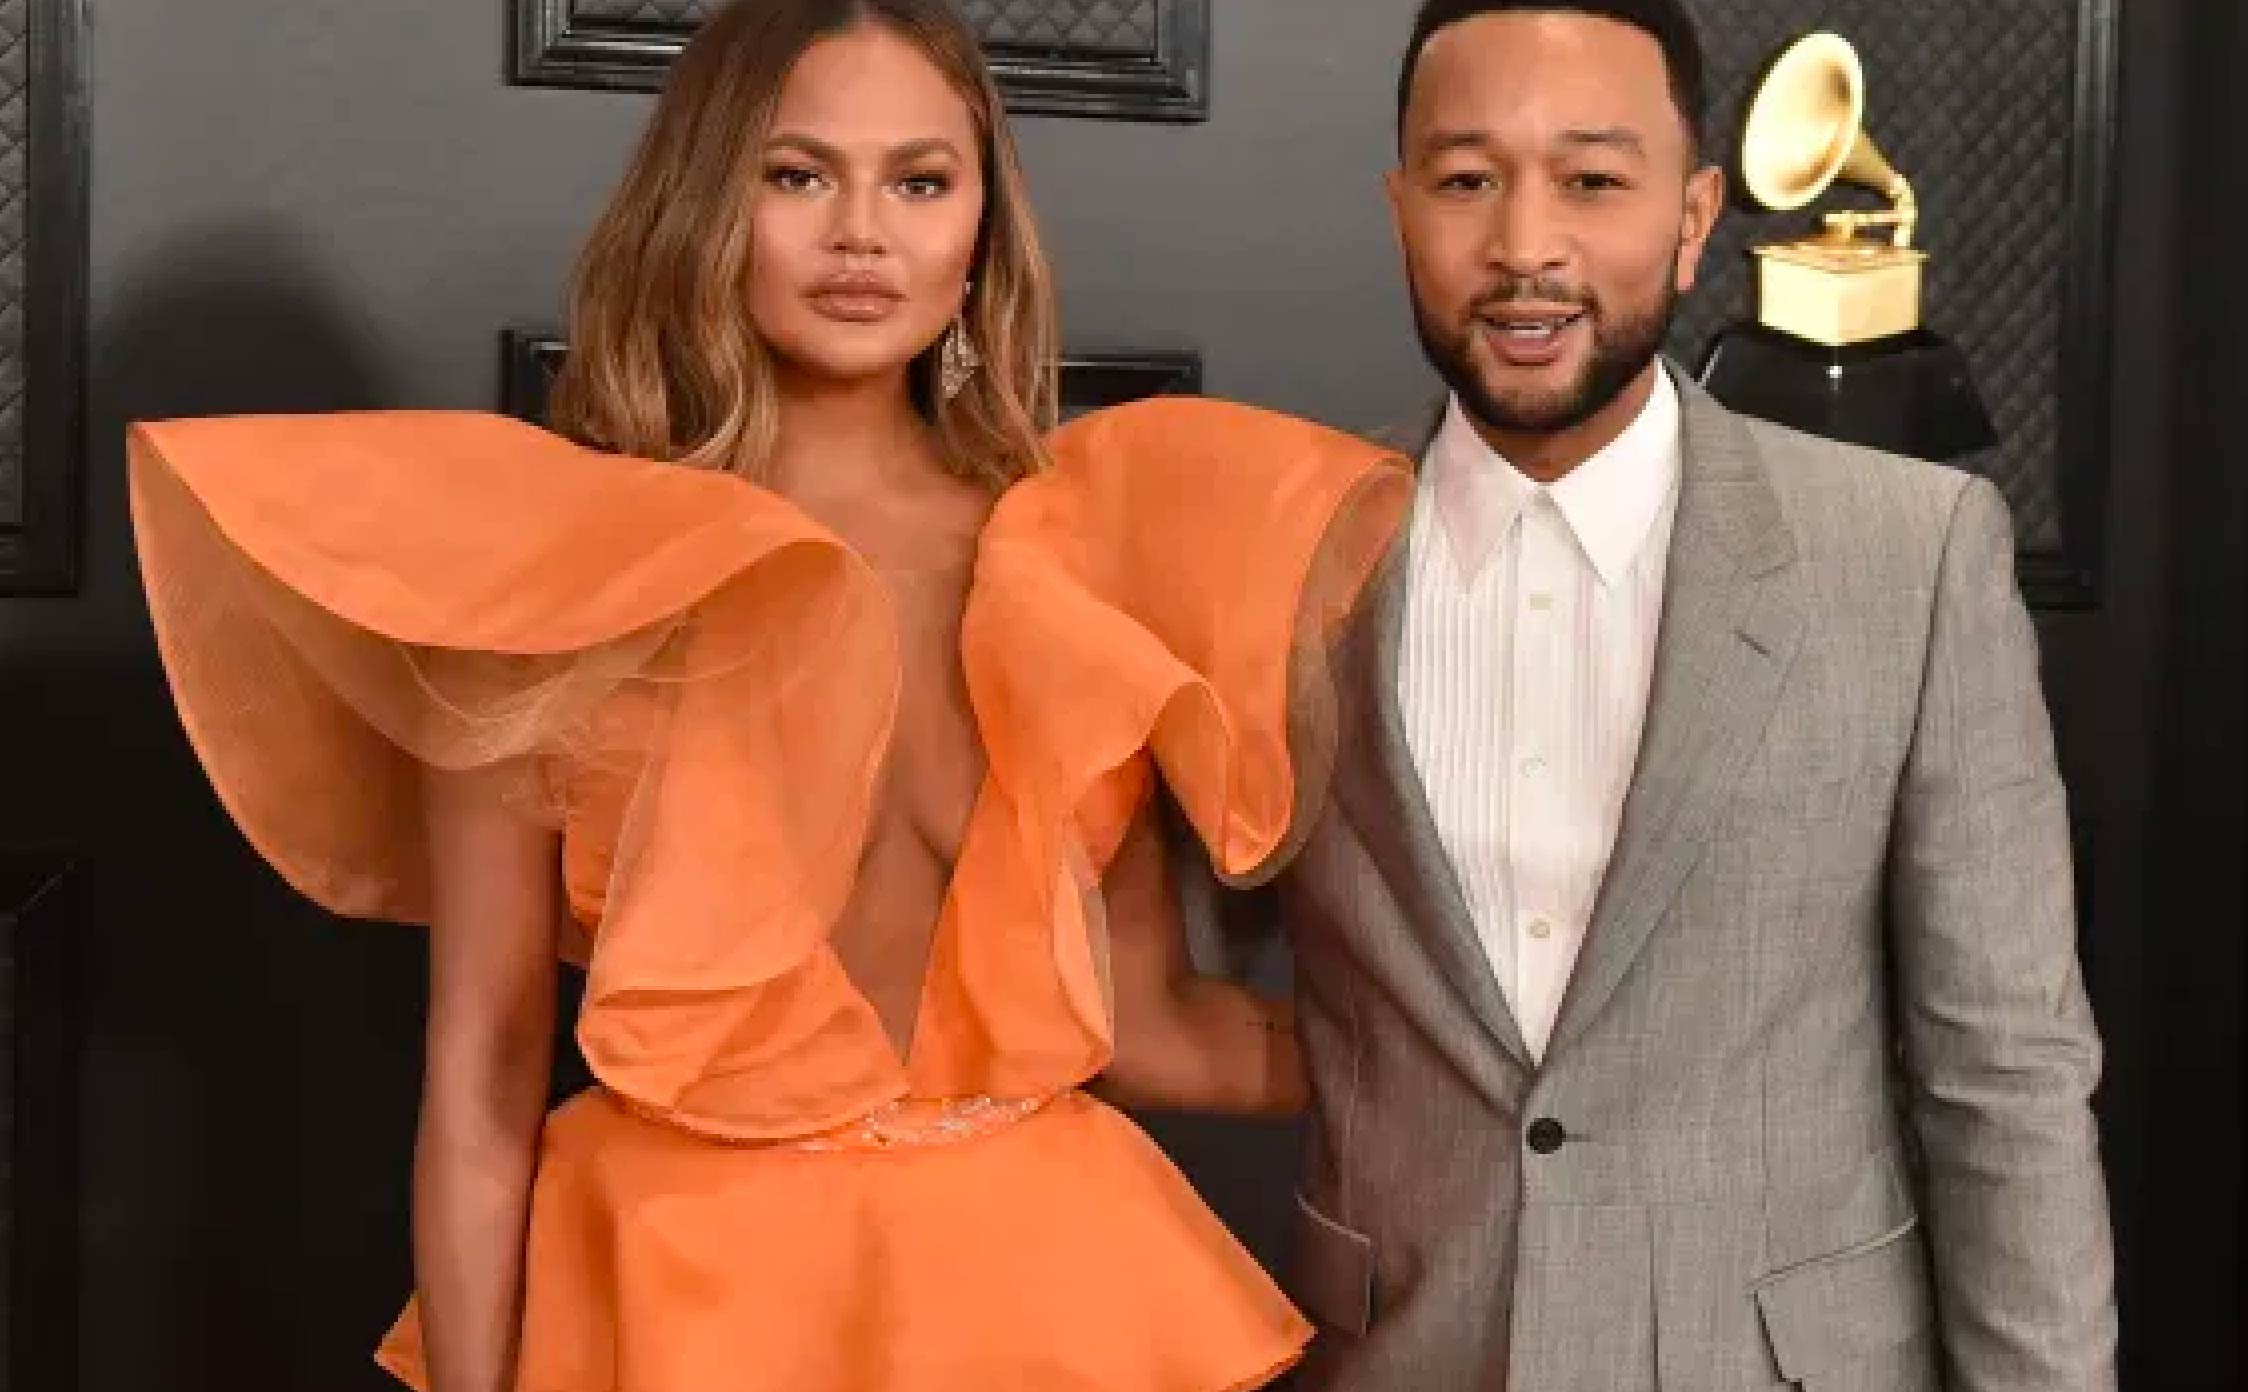 Trump-Haters John Legend and Chrissy Teigen Already Hinting They're Leaving the U.S. if Trump Wins Reelection